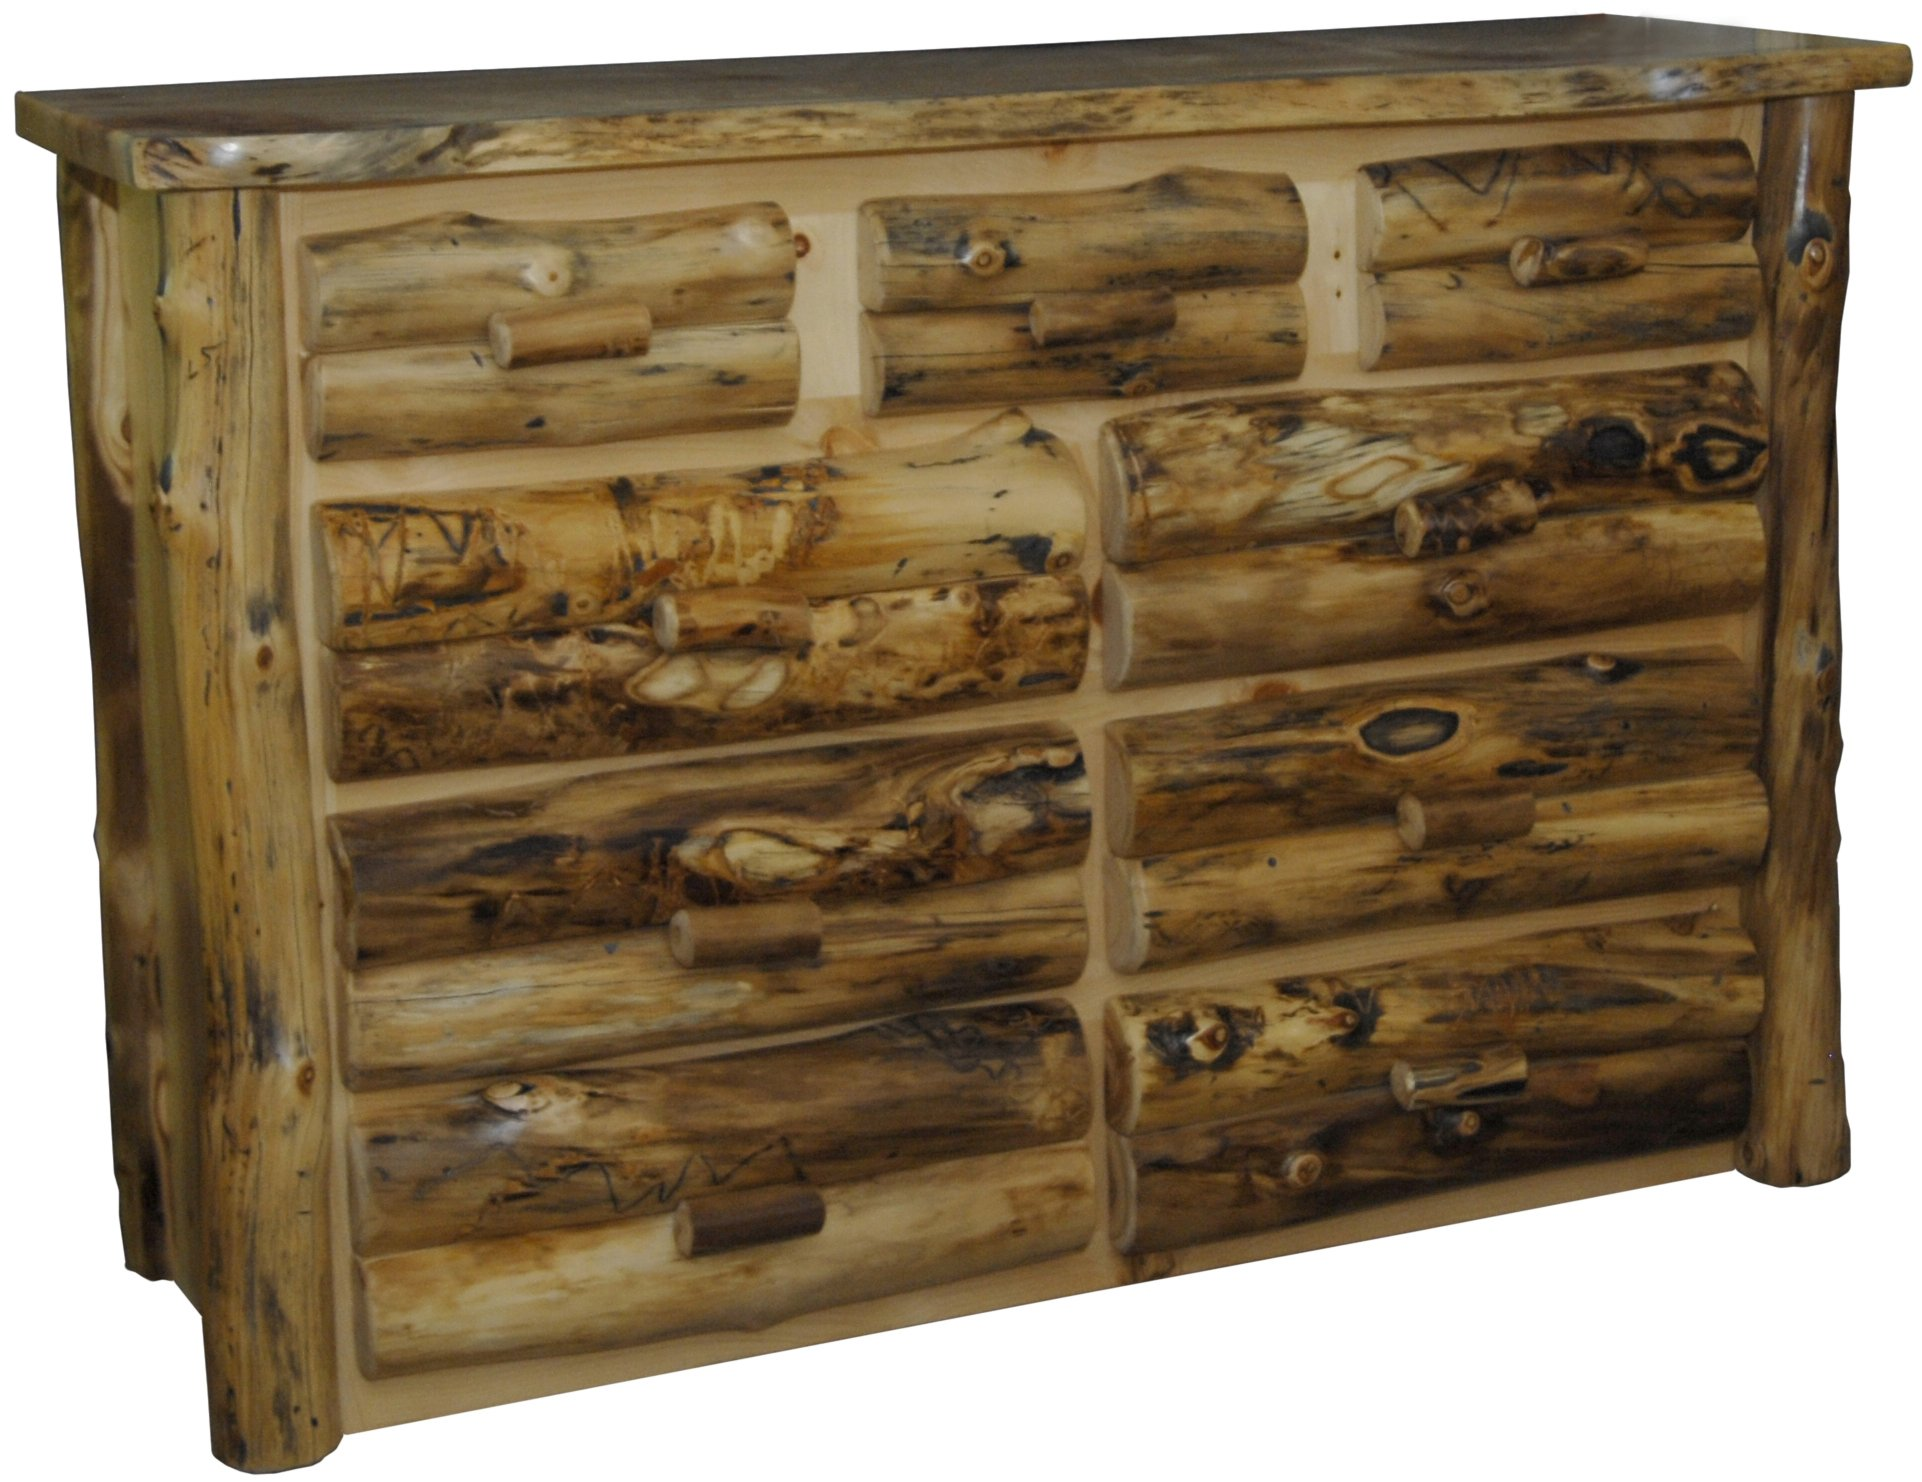 """Furniture Barn USA Rustic Aspen Log 9 Drawer Dresser - Genuine Pennsylvania Amish Craftsmanship. Heirloom Pieces that will last for generations. Made in the USA. Traditional Joinery Methods. Each piece is carefully coated with a Clear Lacquer finish. DIMENSIONS: 35"""" H x 64"""" W x 21"""" D Each piece is Made to Order. Requires time for construction. - dressers-bedroom-furniture, bedroom-furniture, bedroom - 81znGYb4B1L -"""